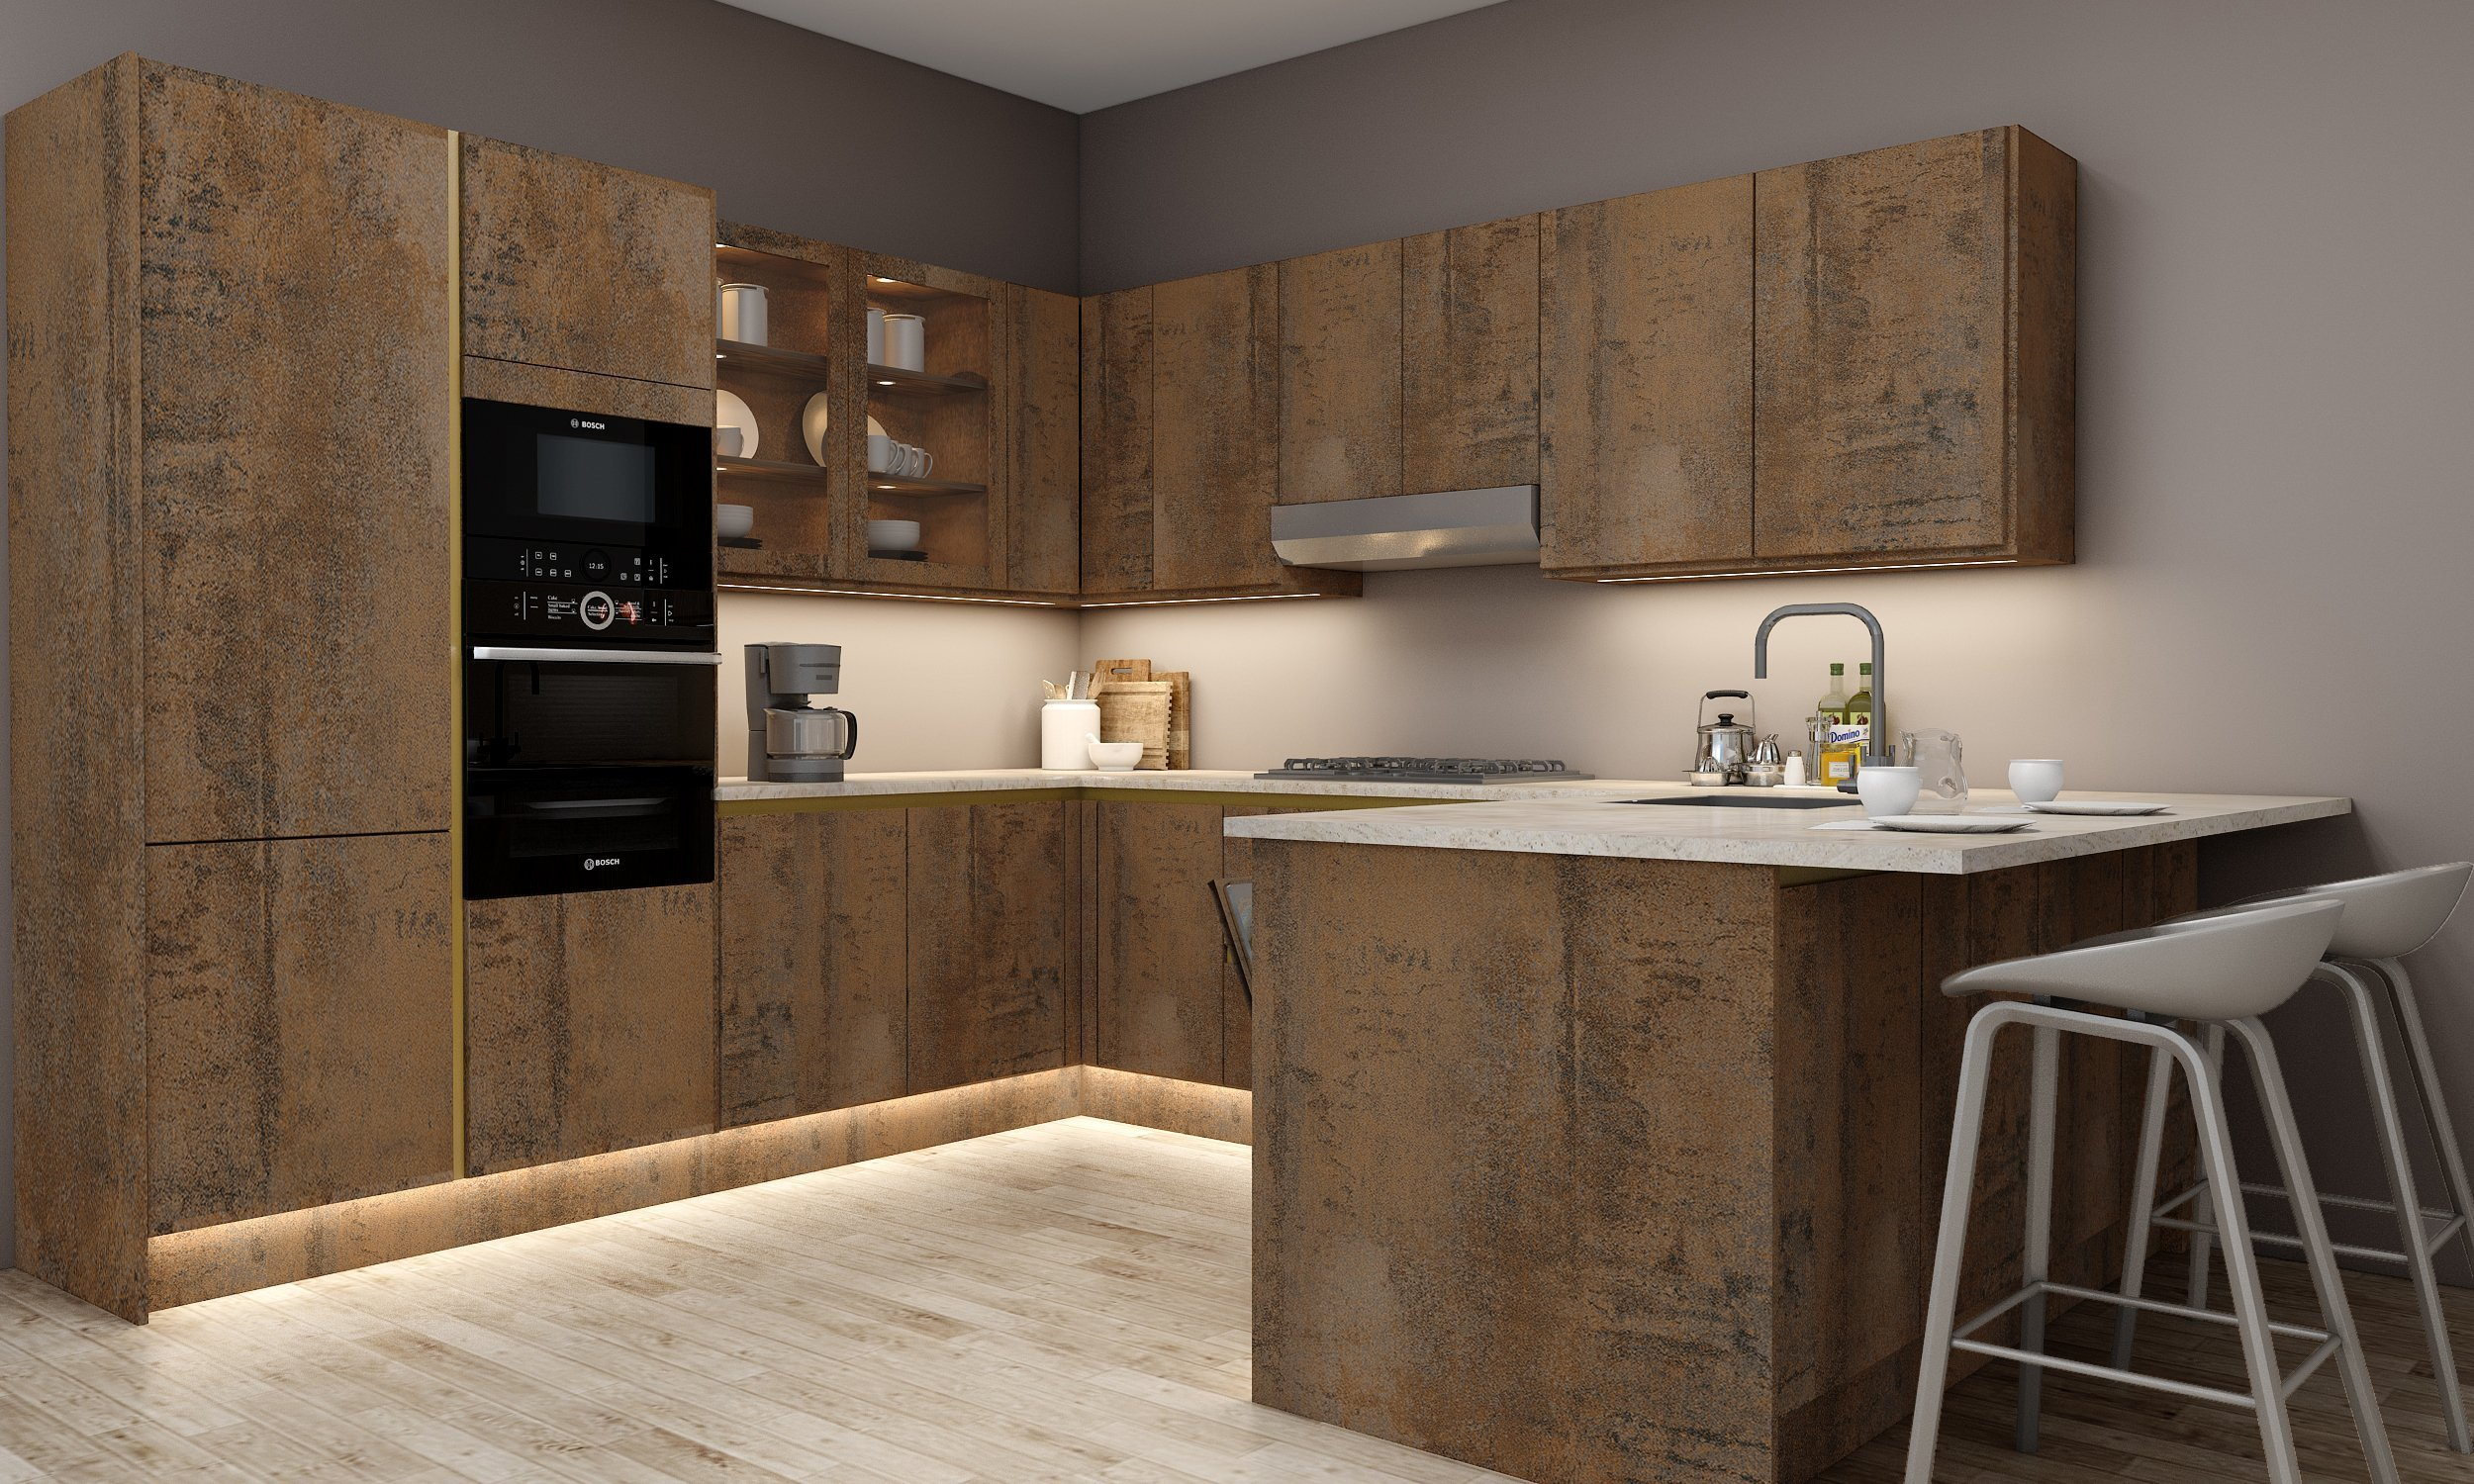 G Shape Handleless Kitchen in Oxide Finish with Gold Gandleless profile